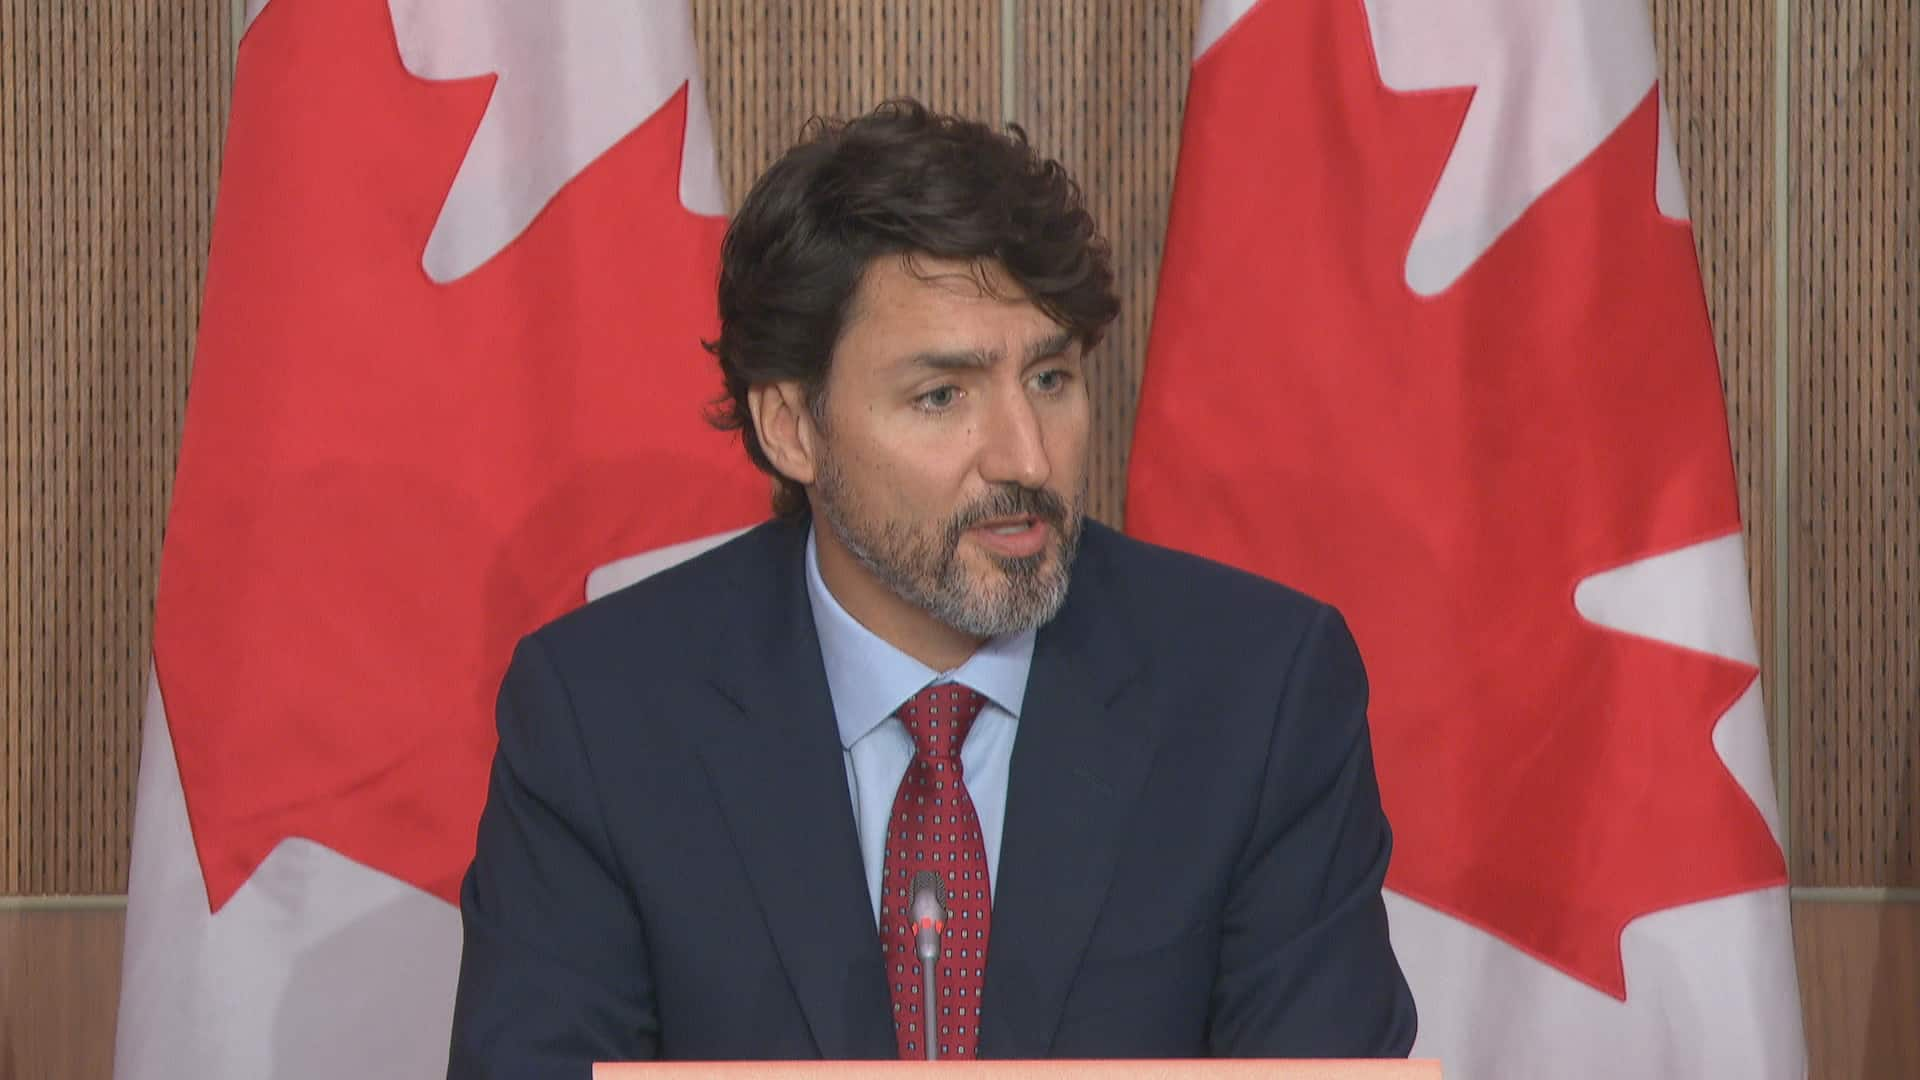 Trudeau calls for common front against COVID-19 after Trump tests positive for virus